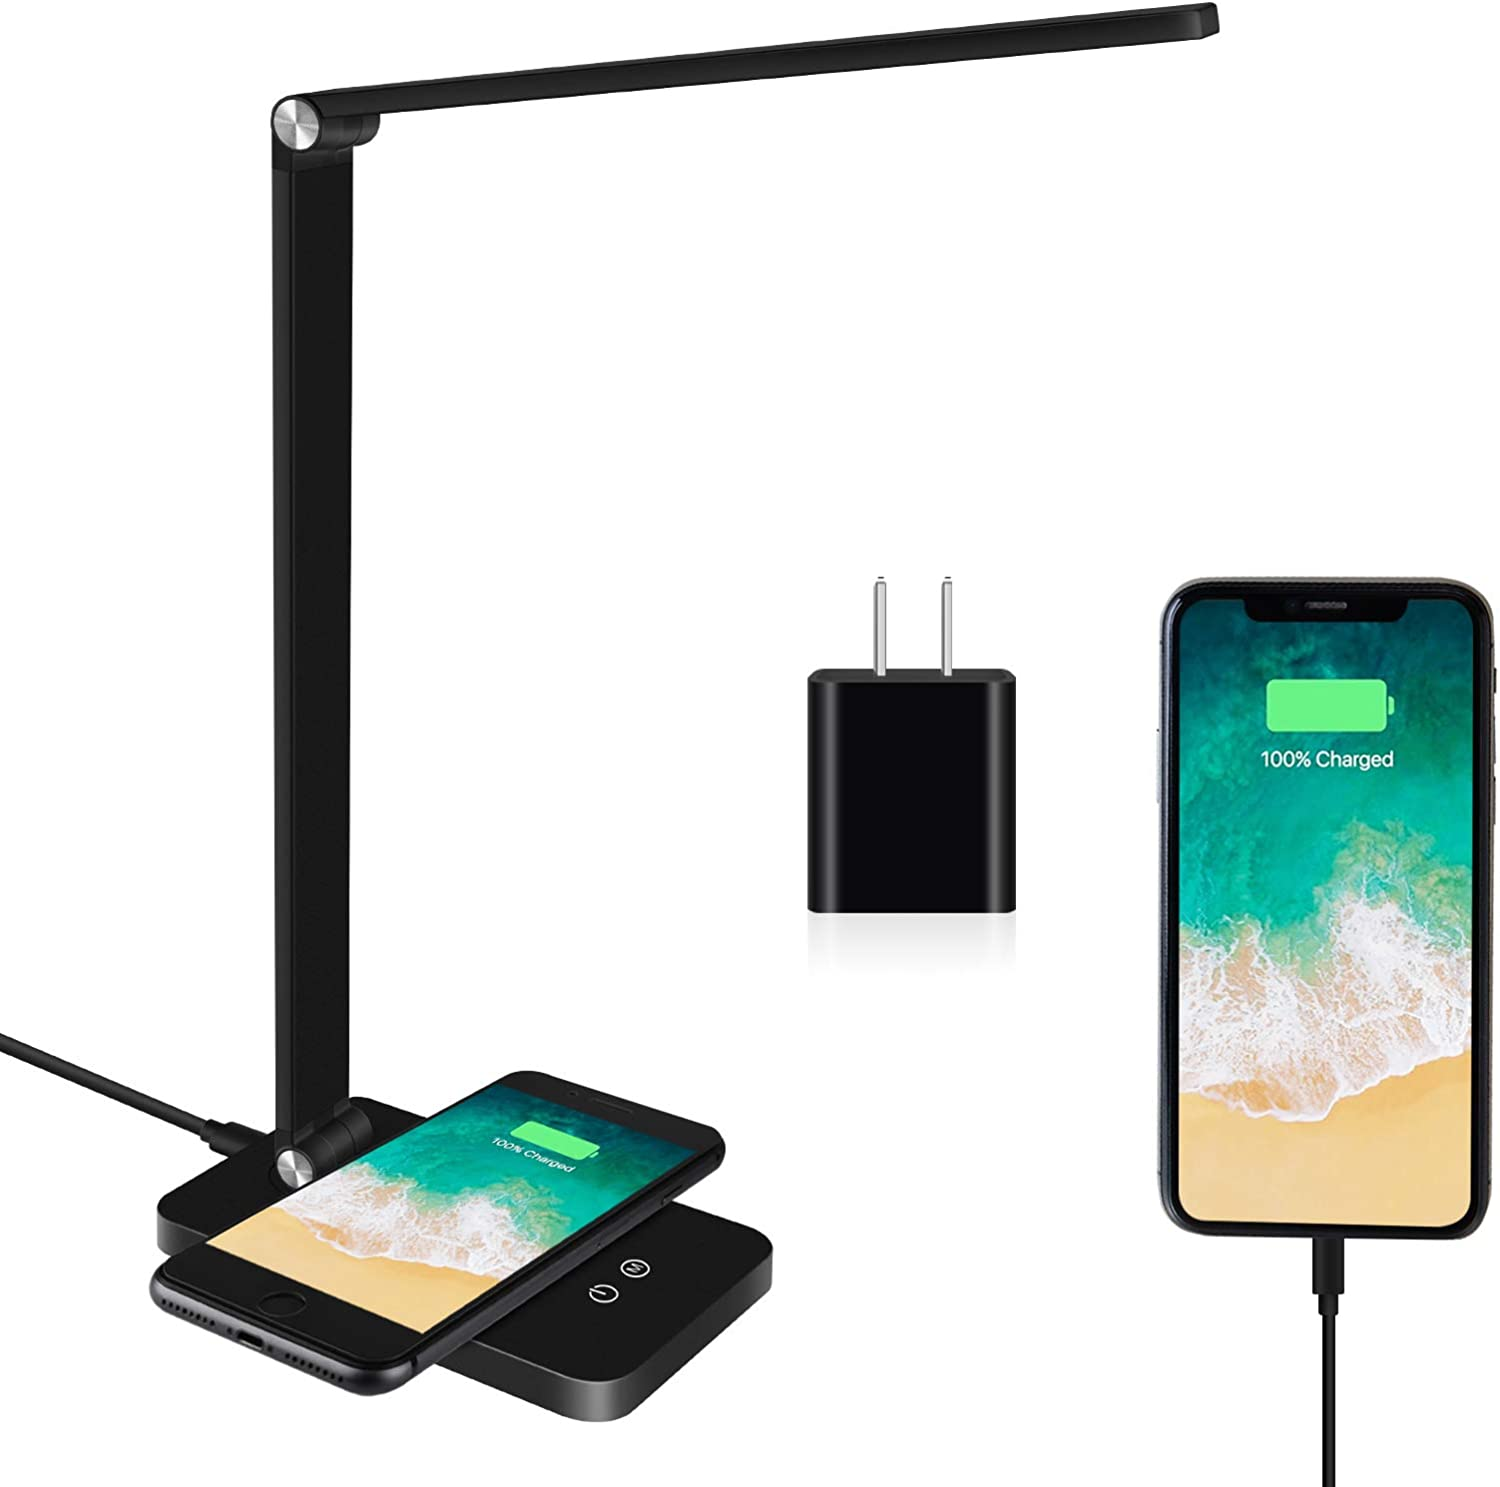 LED Desk Lamp, Desk lamp with Wireless Charger, USB Charging Port,Eye-Caring Desk Lamps for Home Office, 5 Lighting Modes and 3 Brightness Levels, Touch Table Lamp for Study, Work, Reading Light